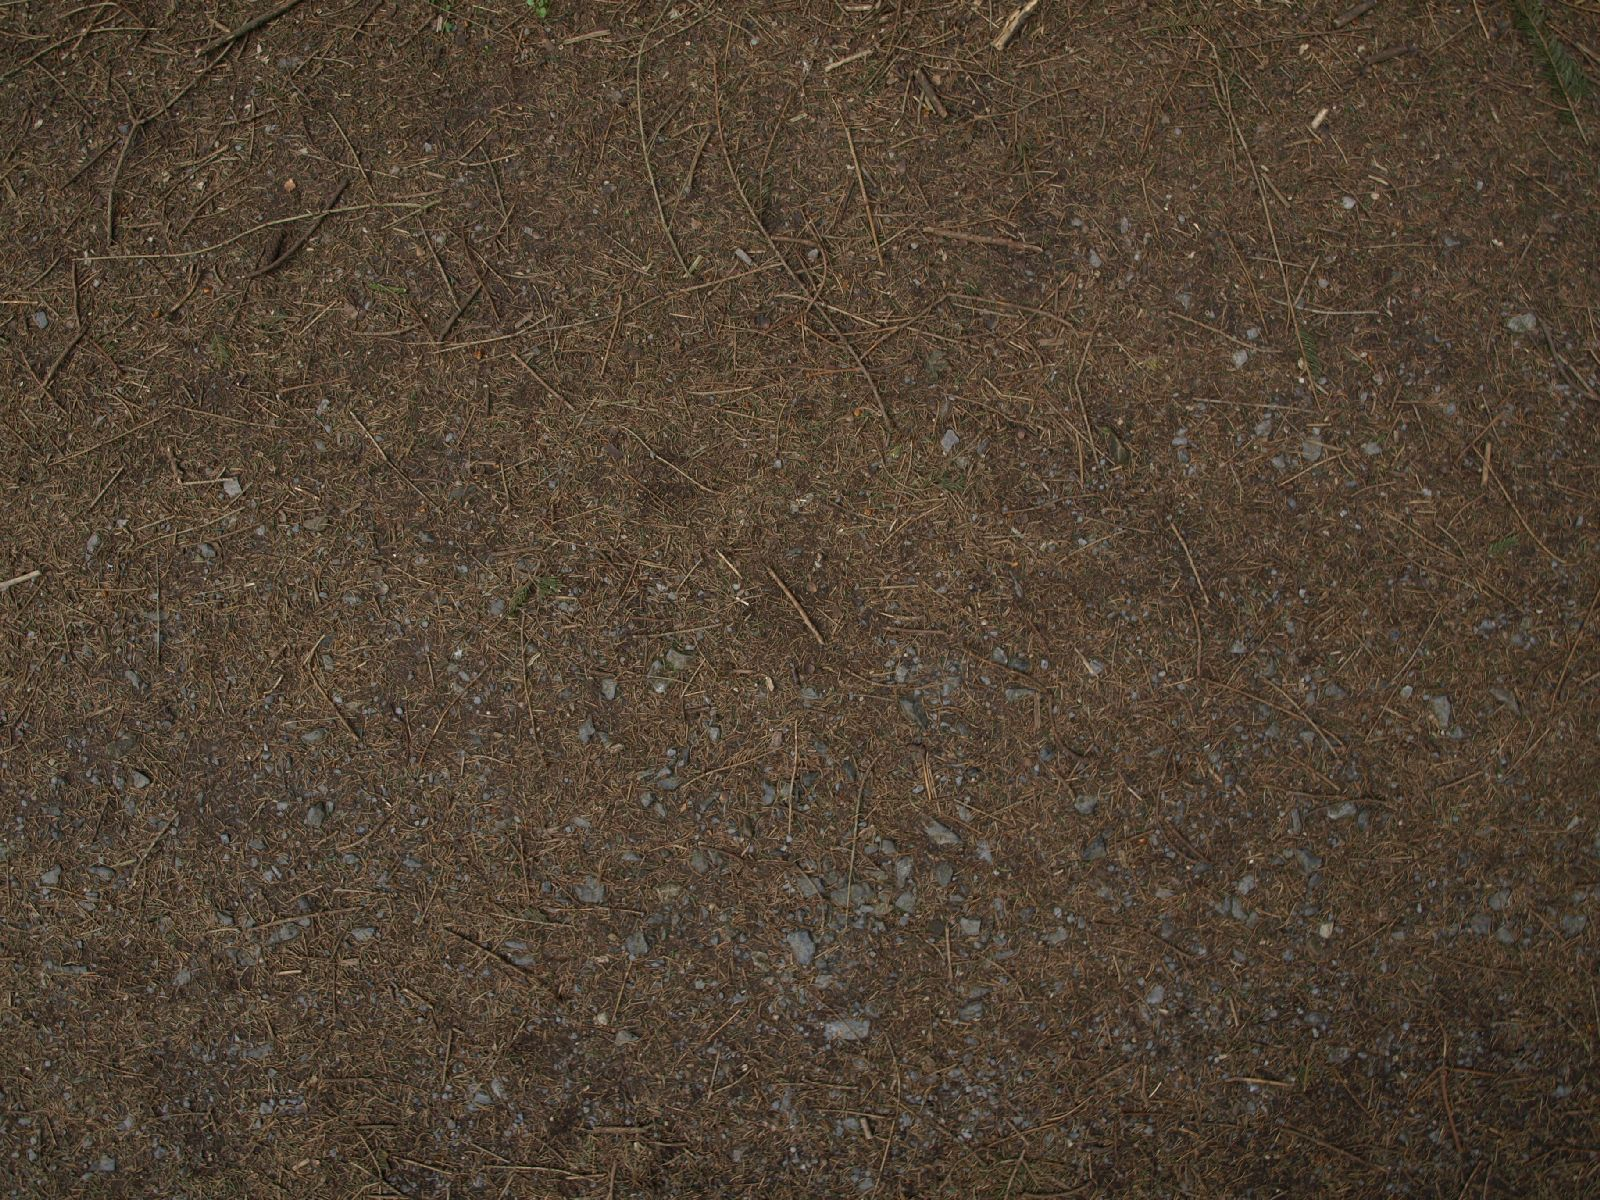 Ground-Nature_Texture_A_P4231718